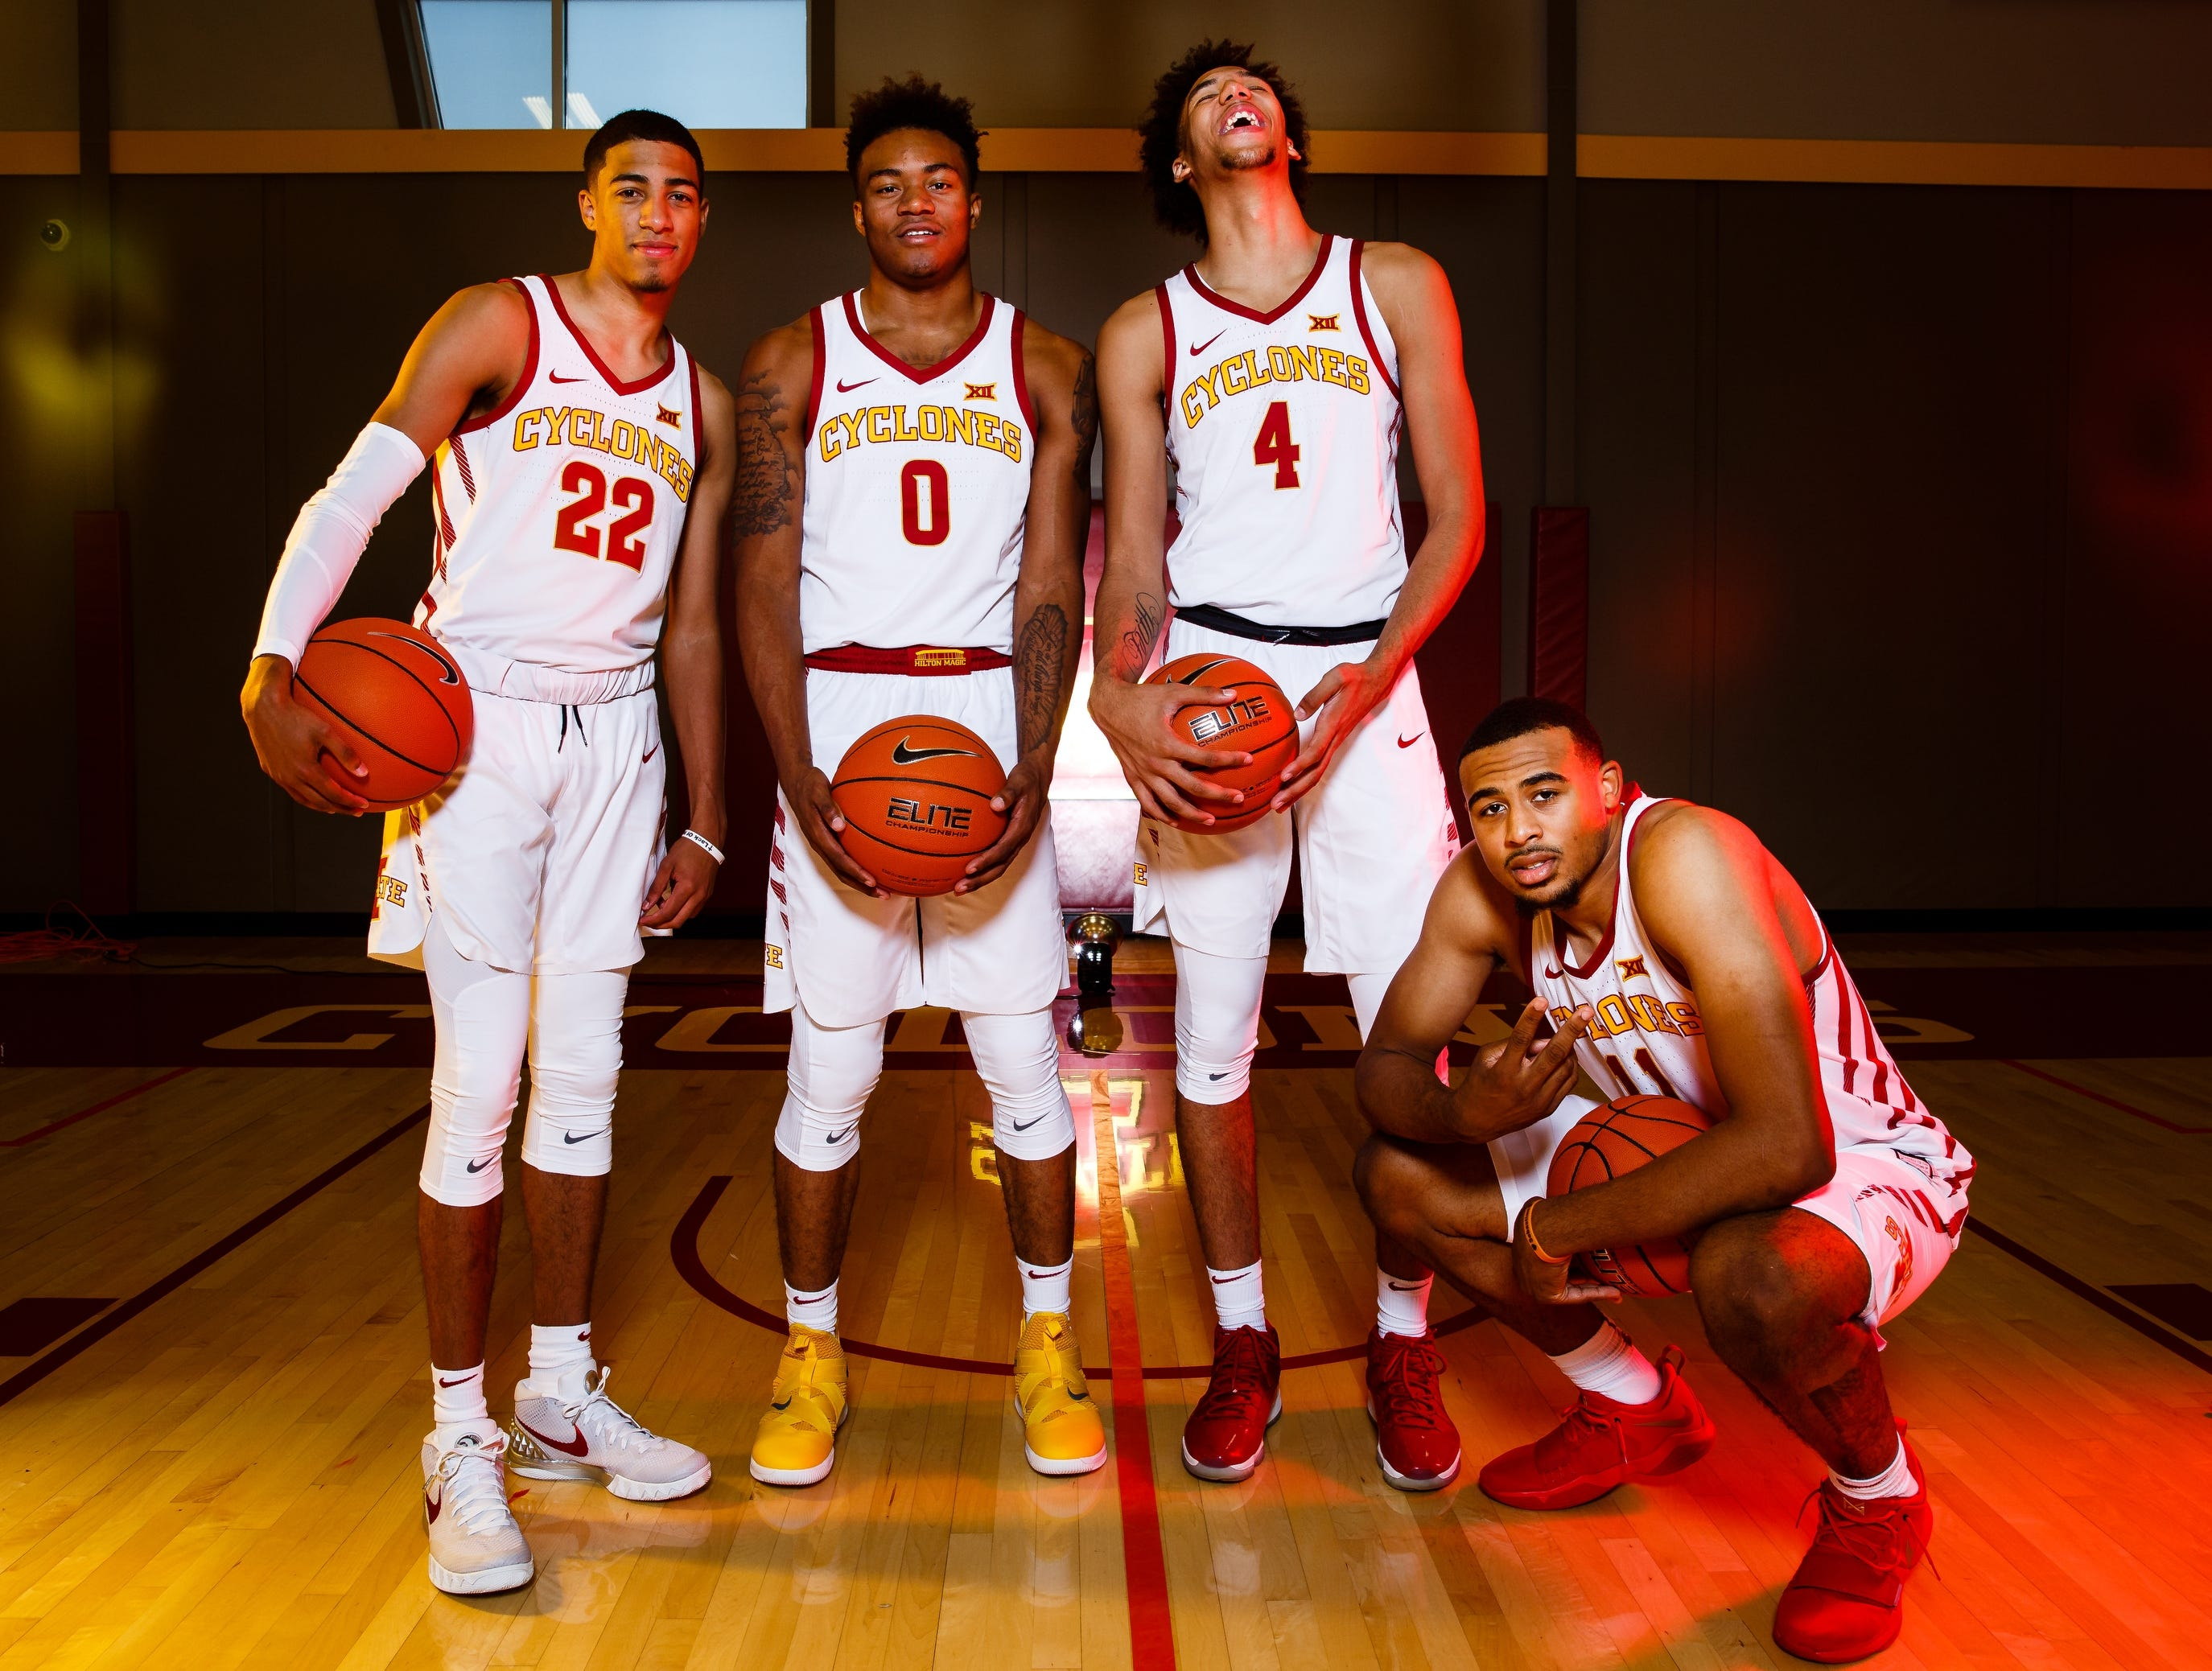 Iowa State's corps of freshman from left, Tyrese Haliburton, Zion Griffin, George Conditt IV, and Talen Horton-Tucker pose for a photo during media day on Thursday, Oct. 11, 2018, in Ames.